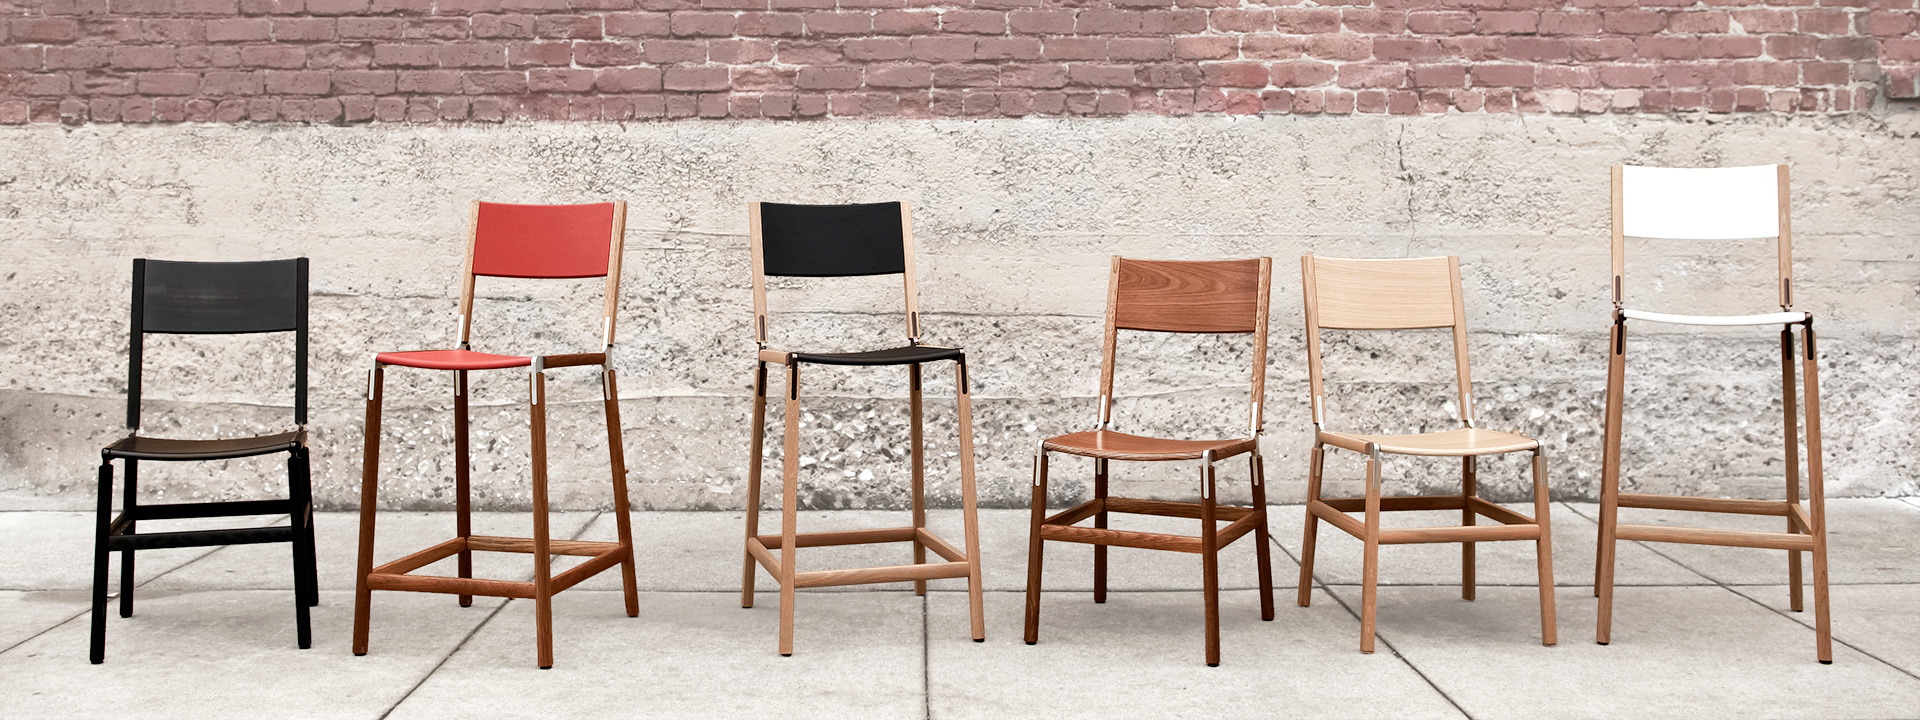 a row of chairs from the brand Fyrn